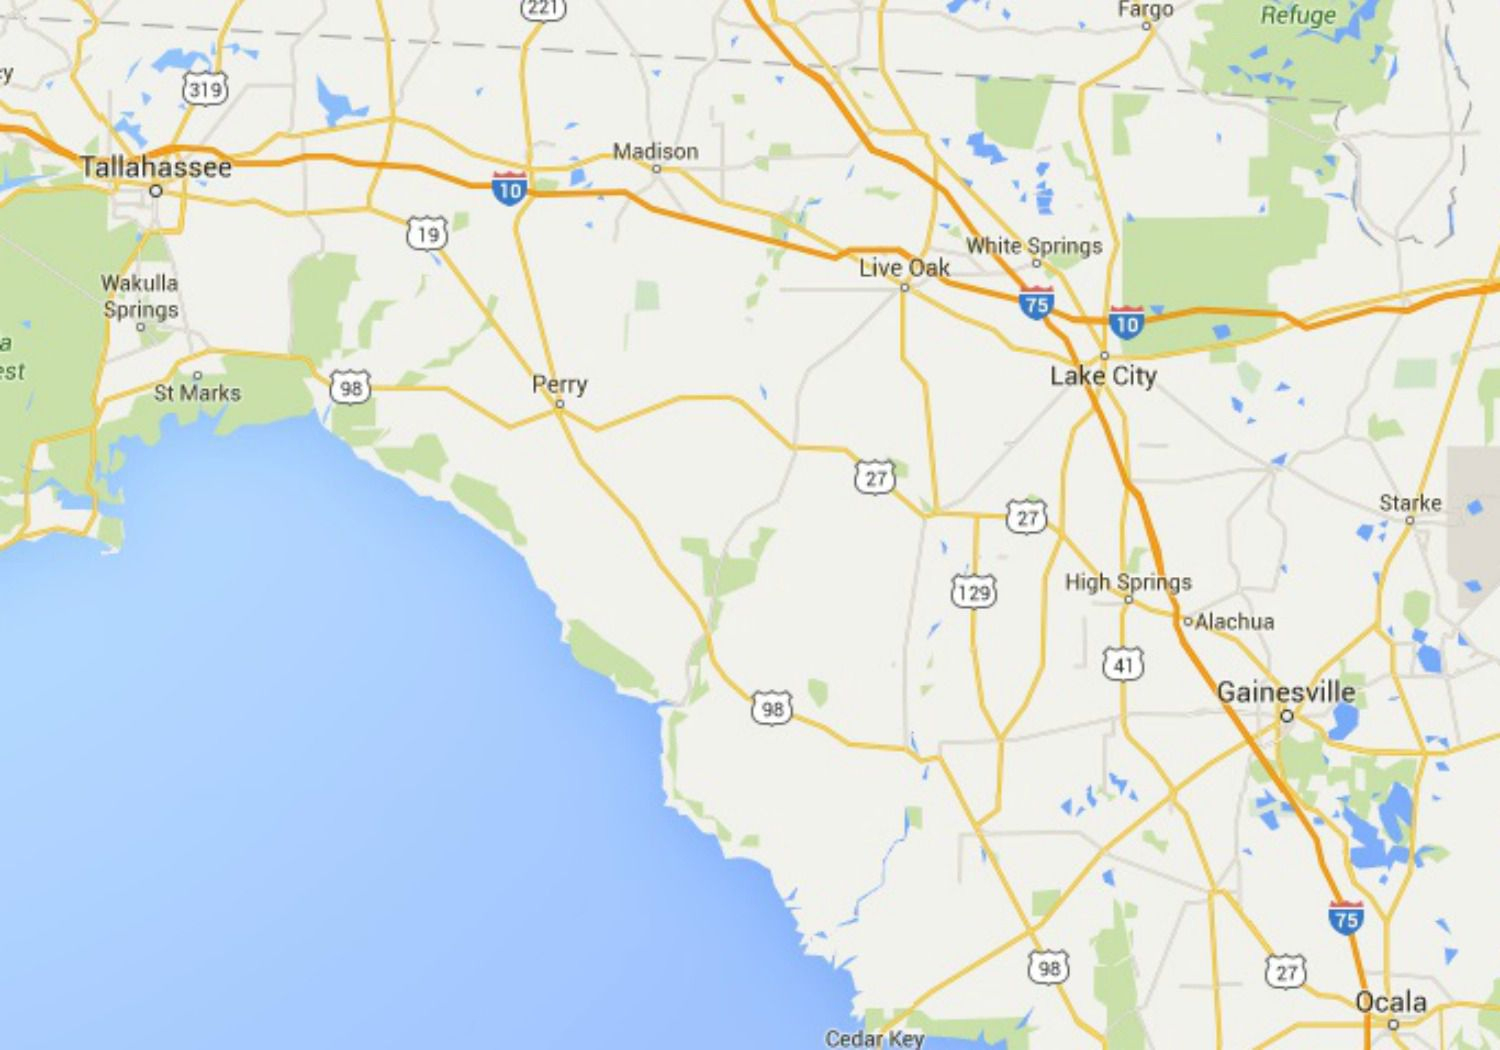 Maps Of Florida: Orlando, Tampa, Miami, Keys, And More - Destin Florida Location On Map